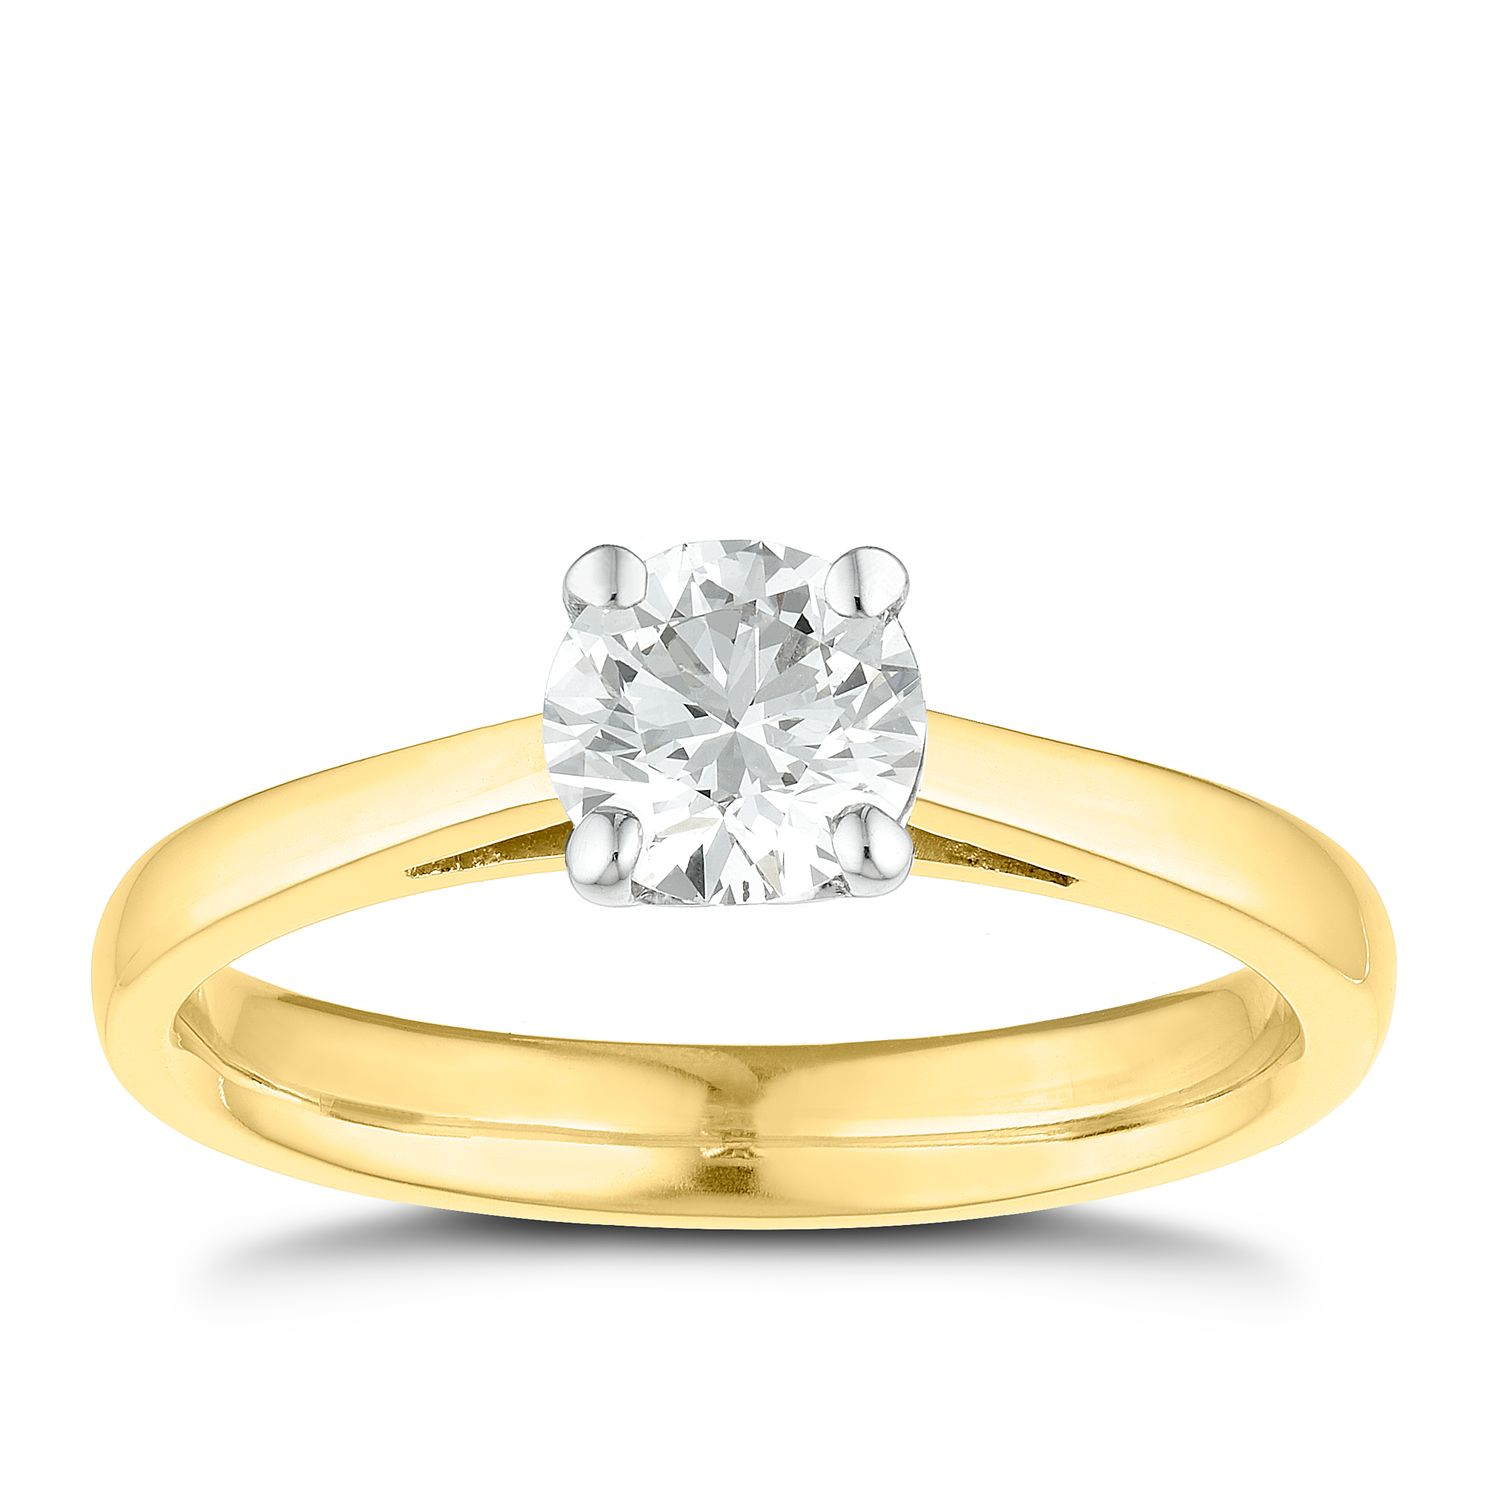 Tolkowsky 18ct Yellow Gold 3/4ct I-I1 Diamond Ring - Product number 8661391